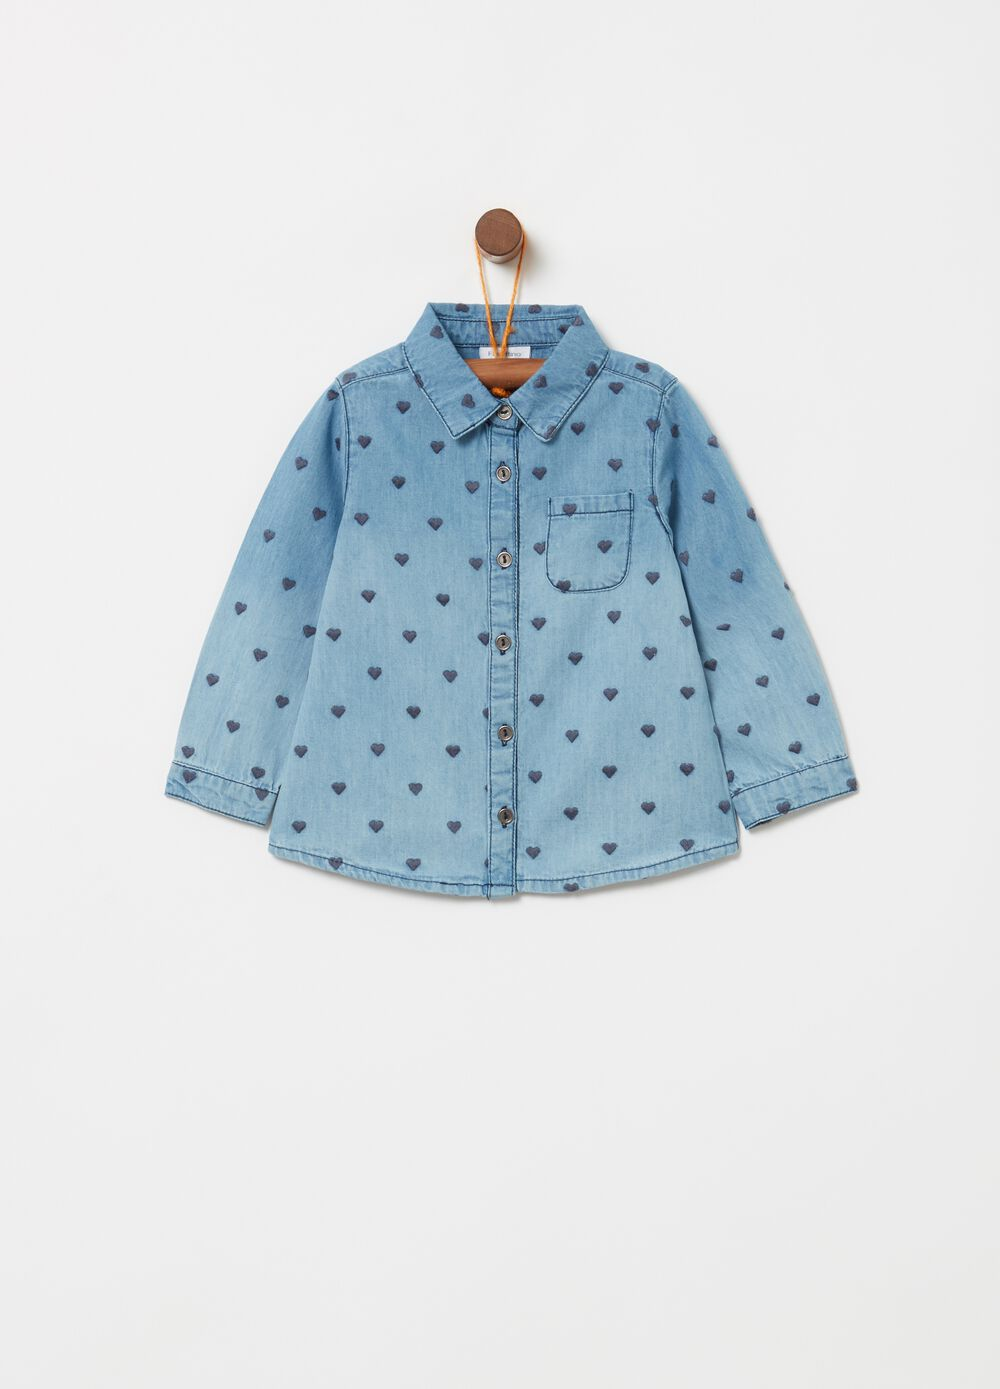 Denim shirt with pocket and heart embroidery